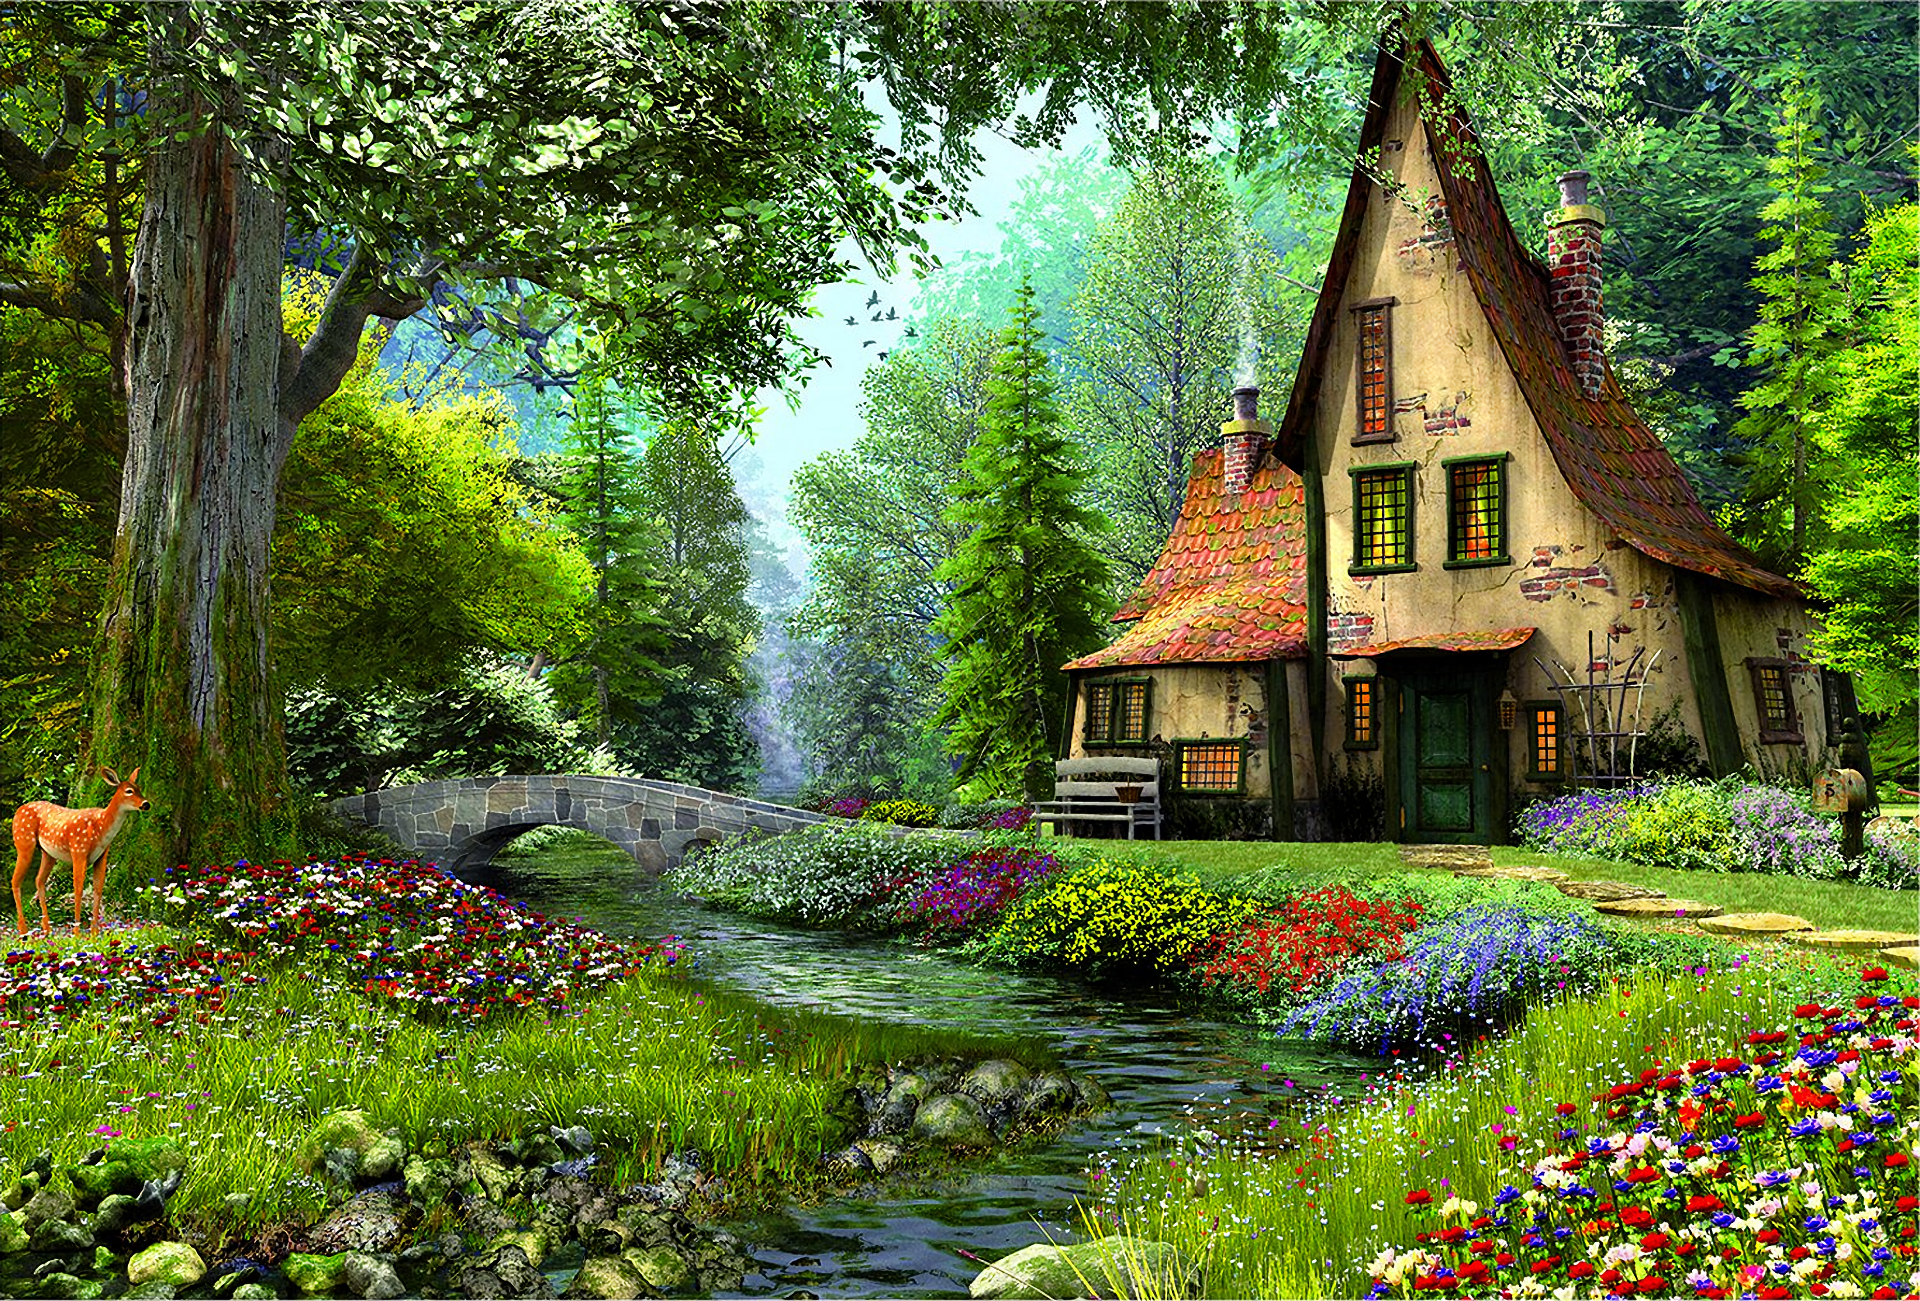 Fairytale House In The Forest Hd Wallpaper